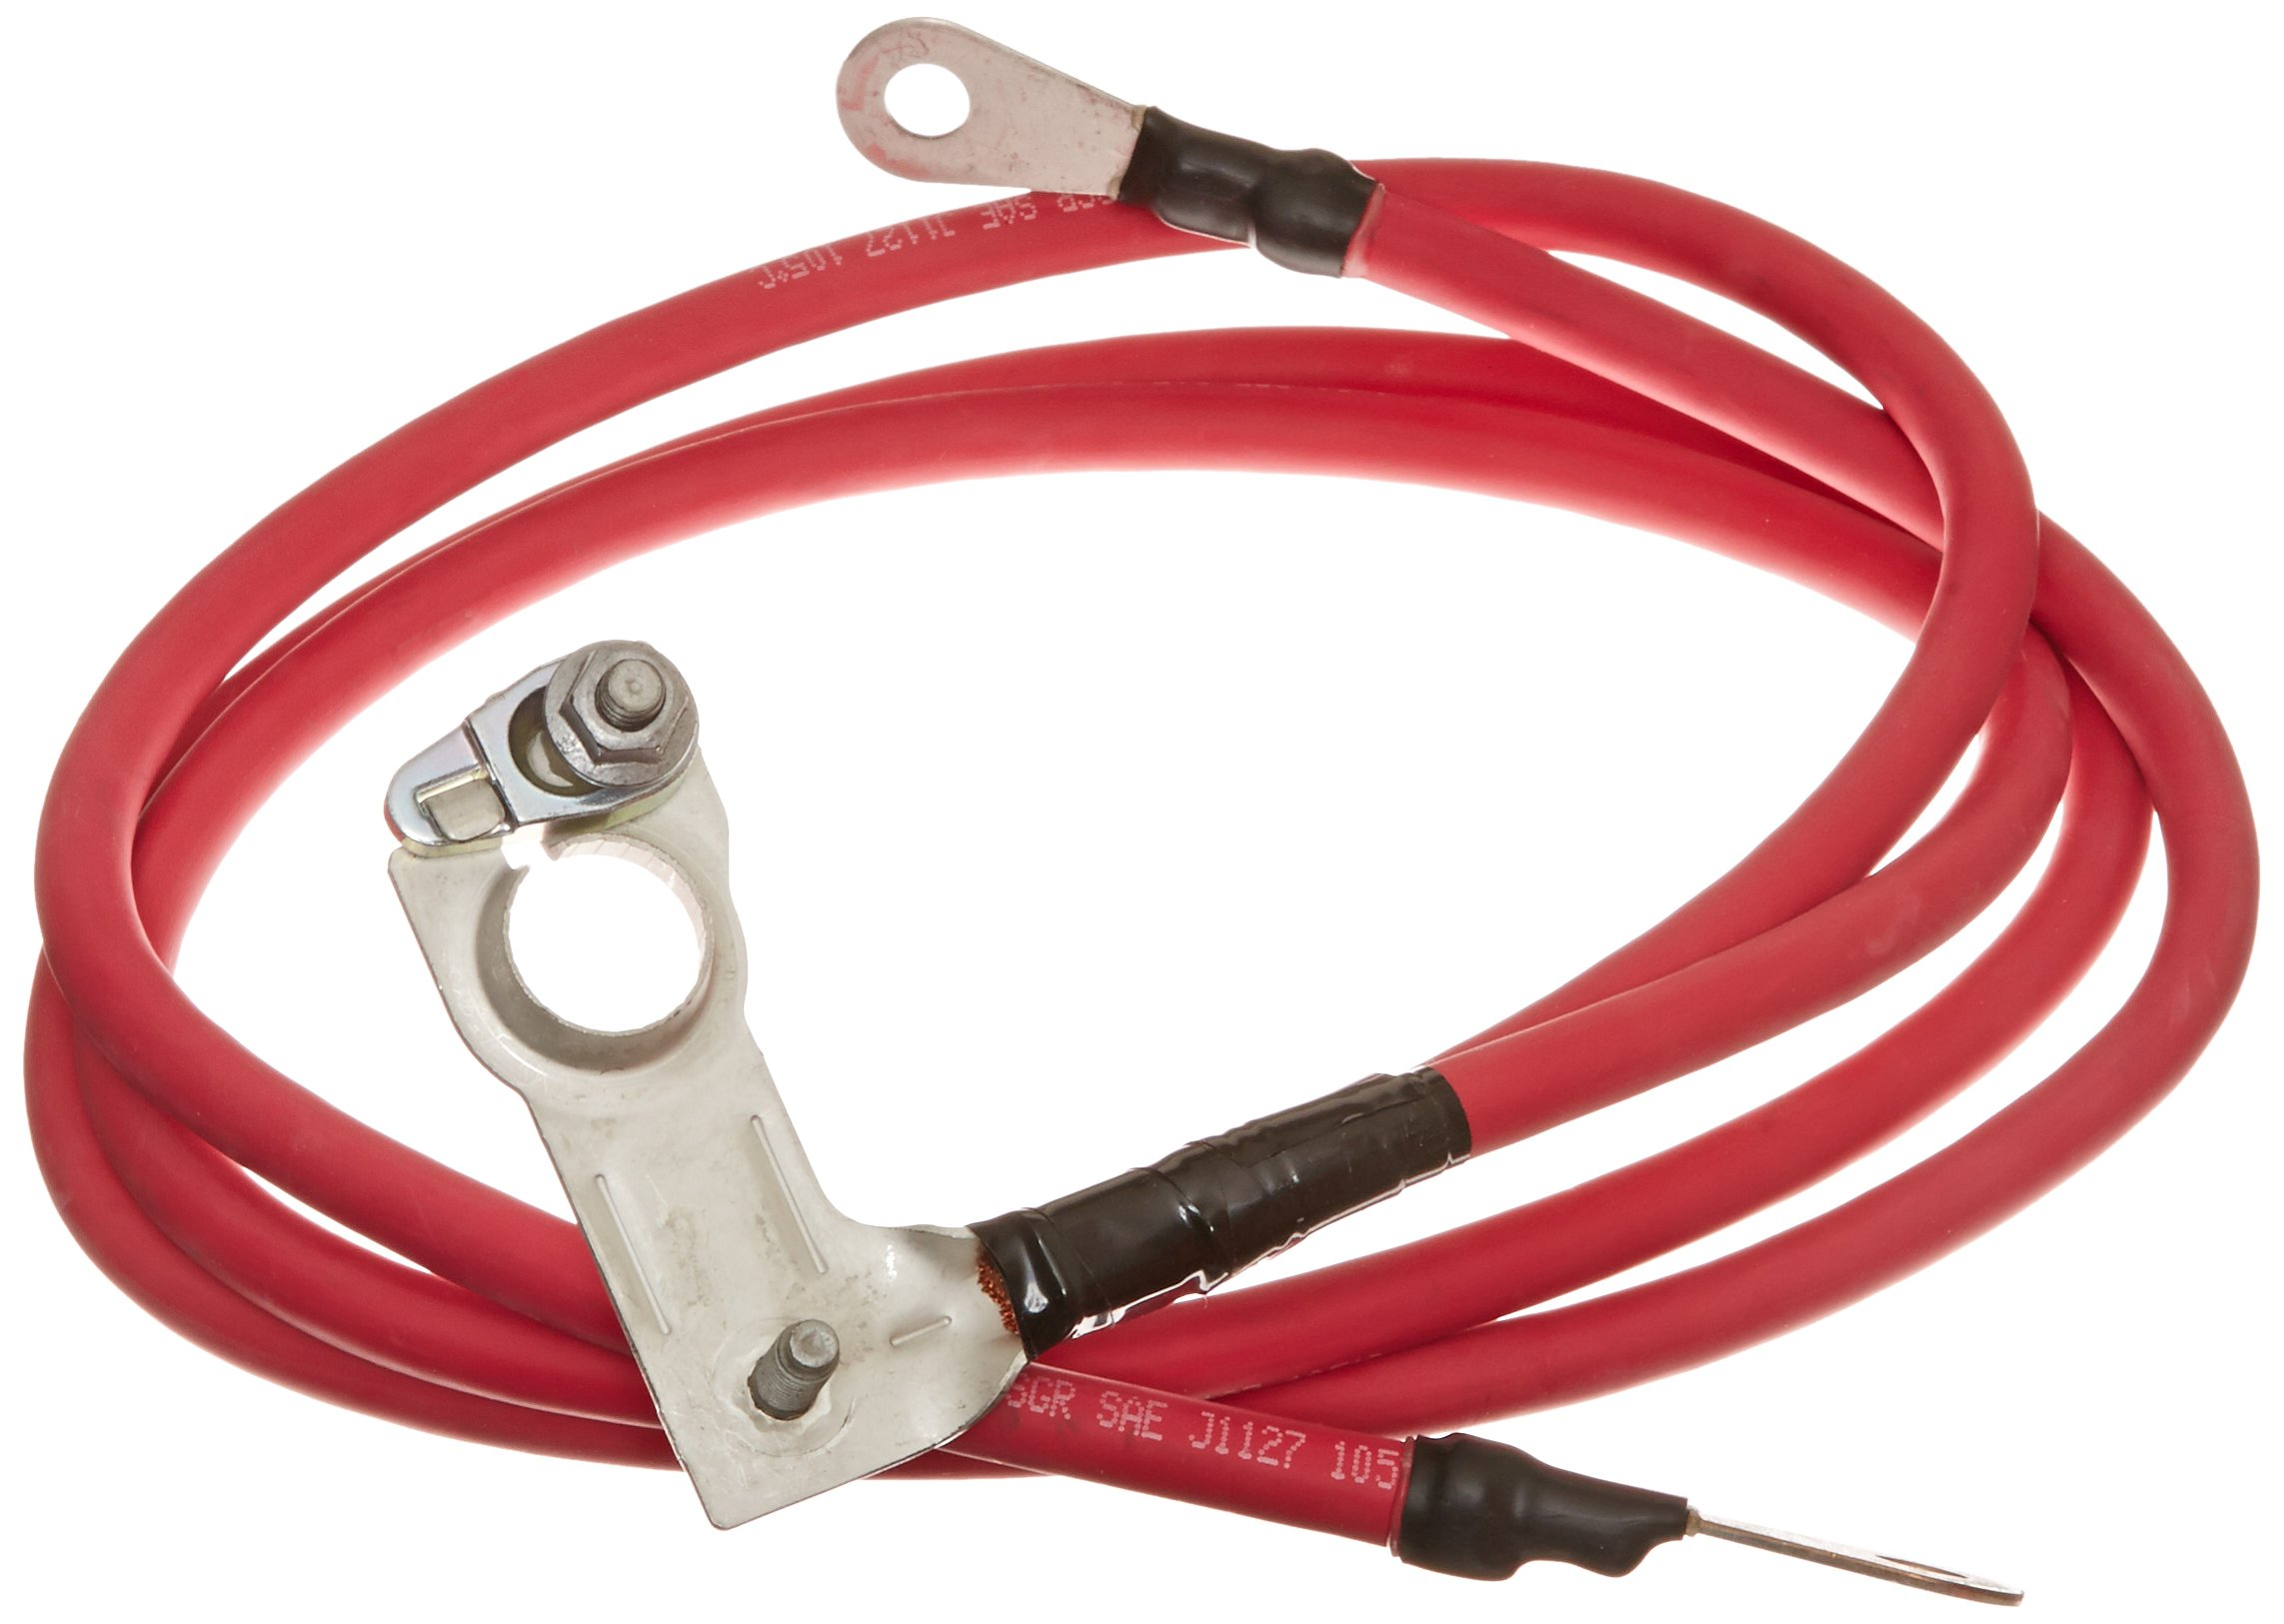 ACDelco 2BC5 Professional Positive Battery Cable